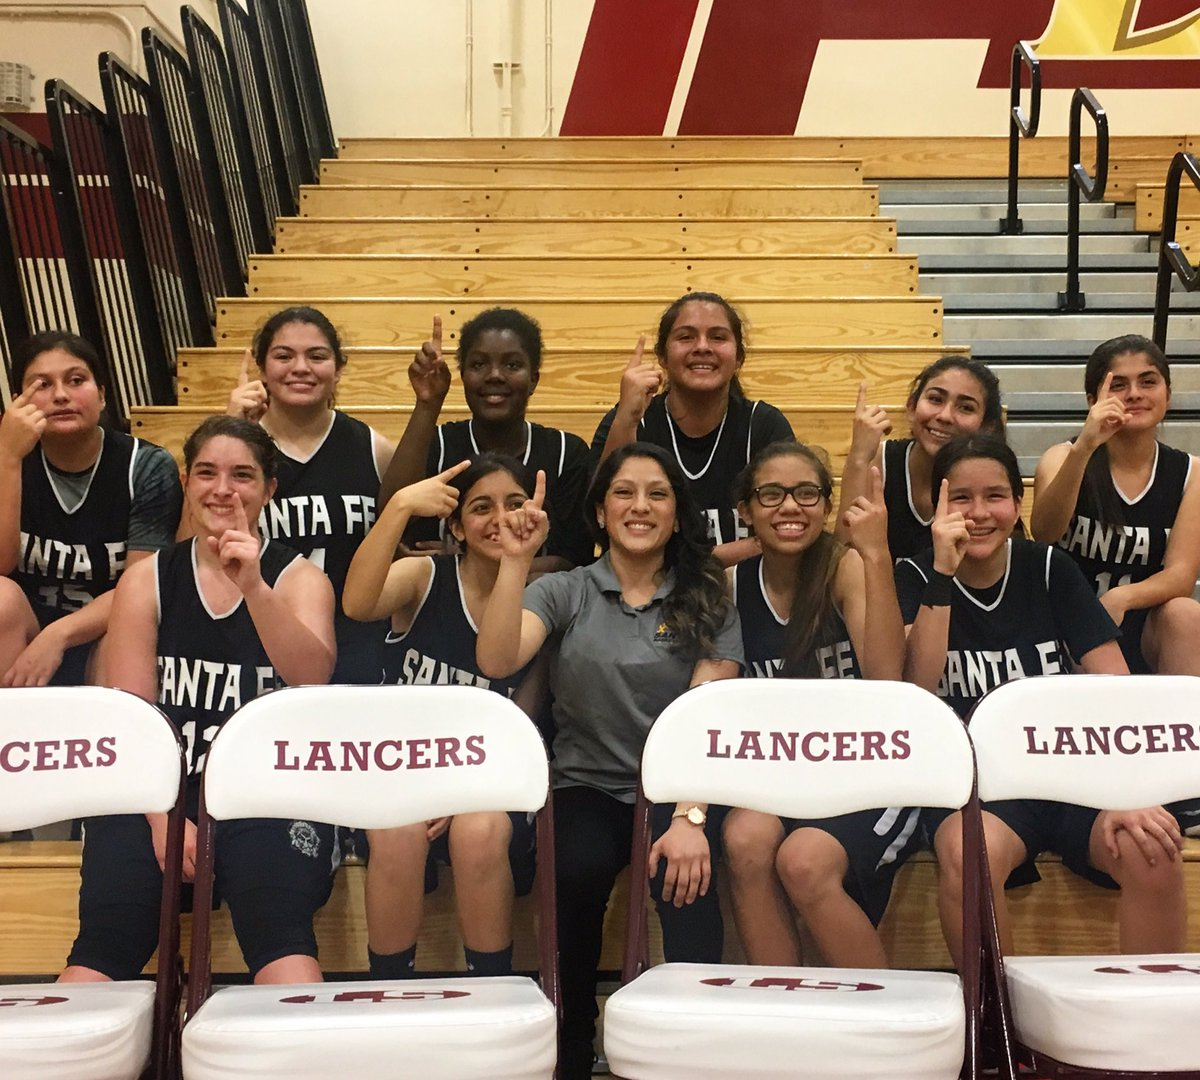 League champs, undefeated 10-0!! 🏀🏀💛💛🖤🖤 https://t.co/xnutQOOT3I